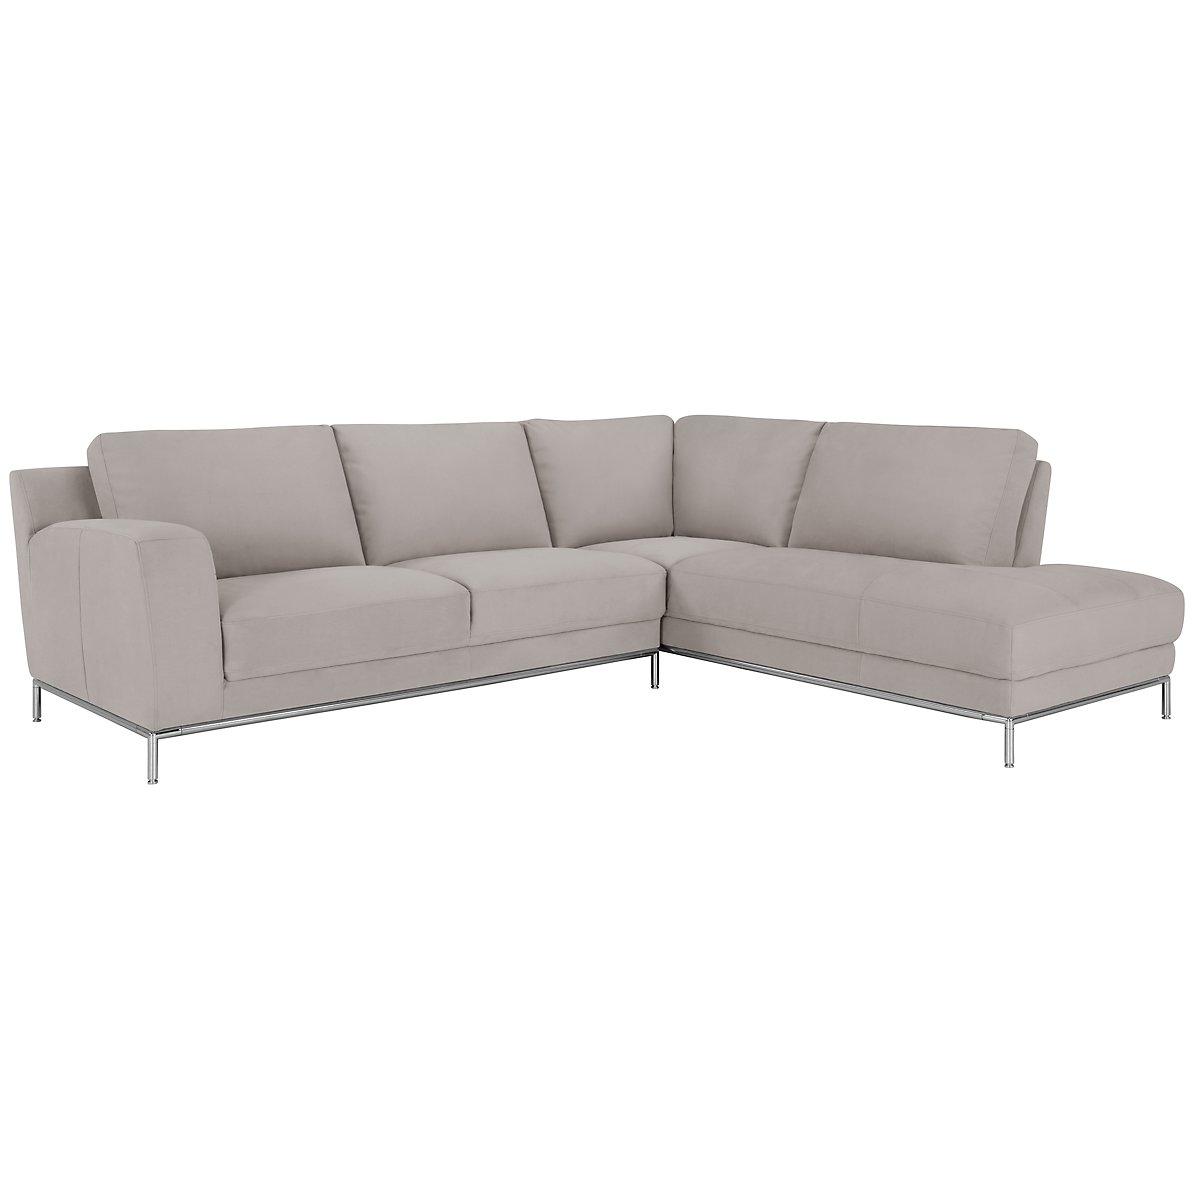 City furniture wynn lt gray microfiber right chaise sectional for Gray microfiber sectional sofa with chaise